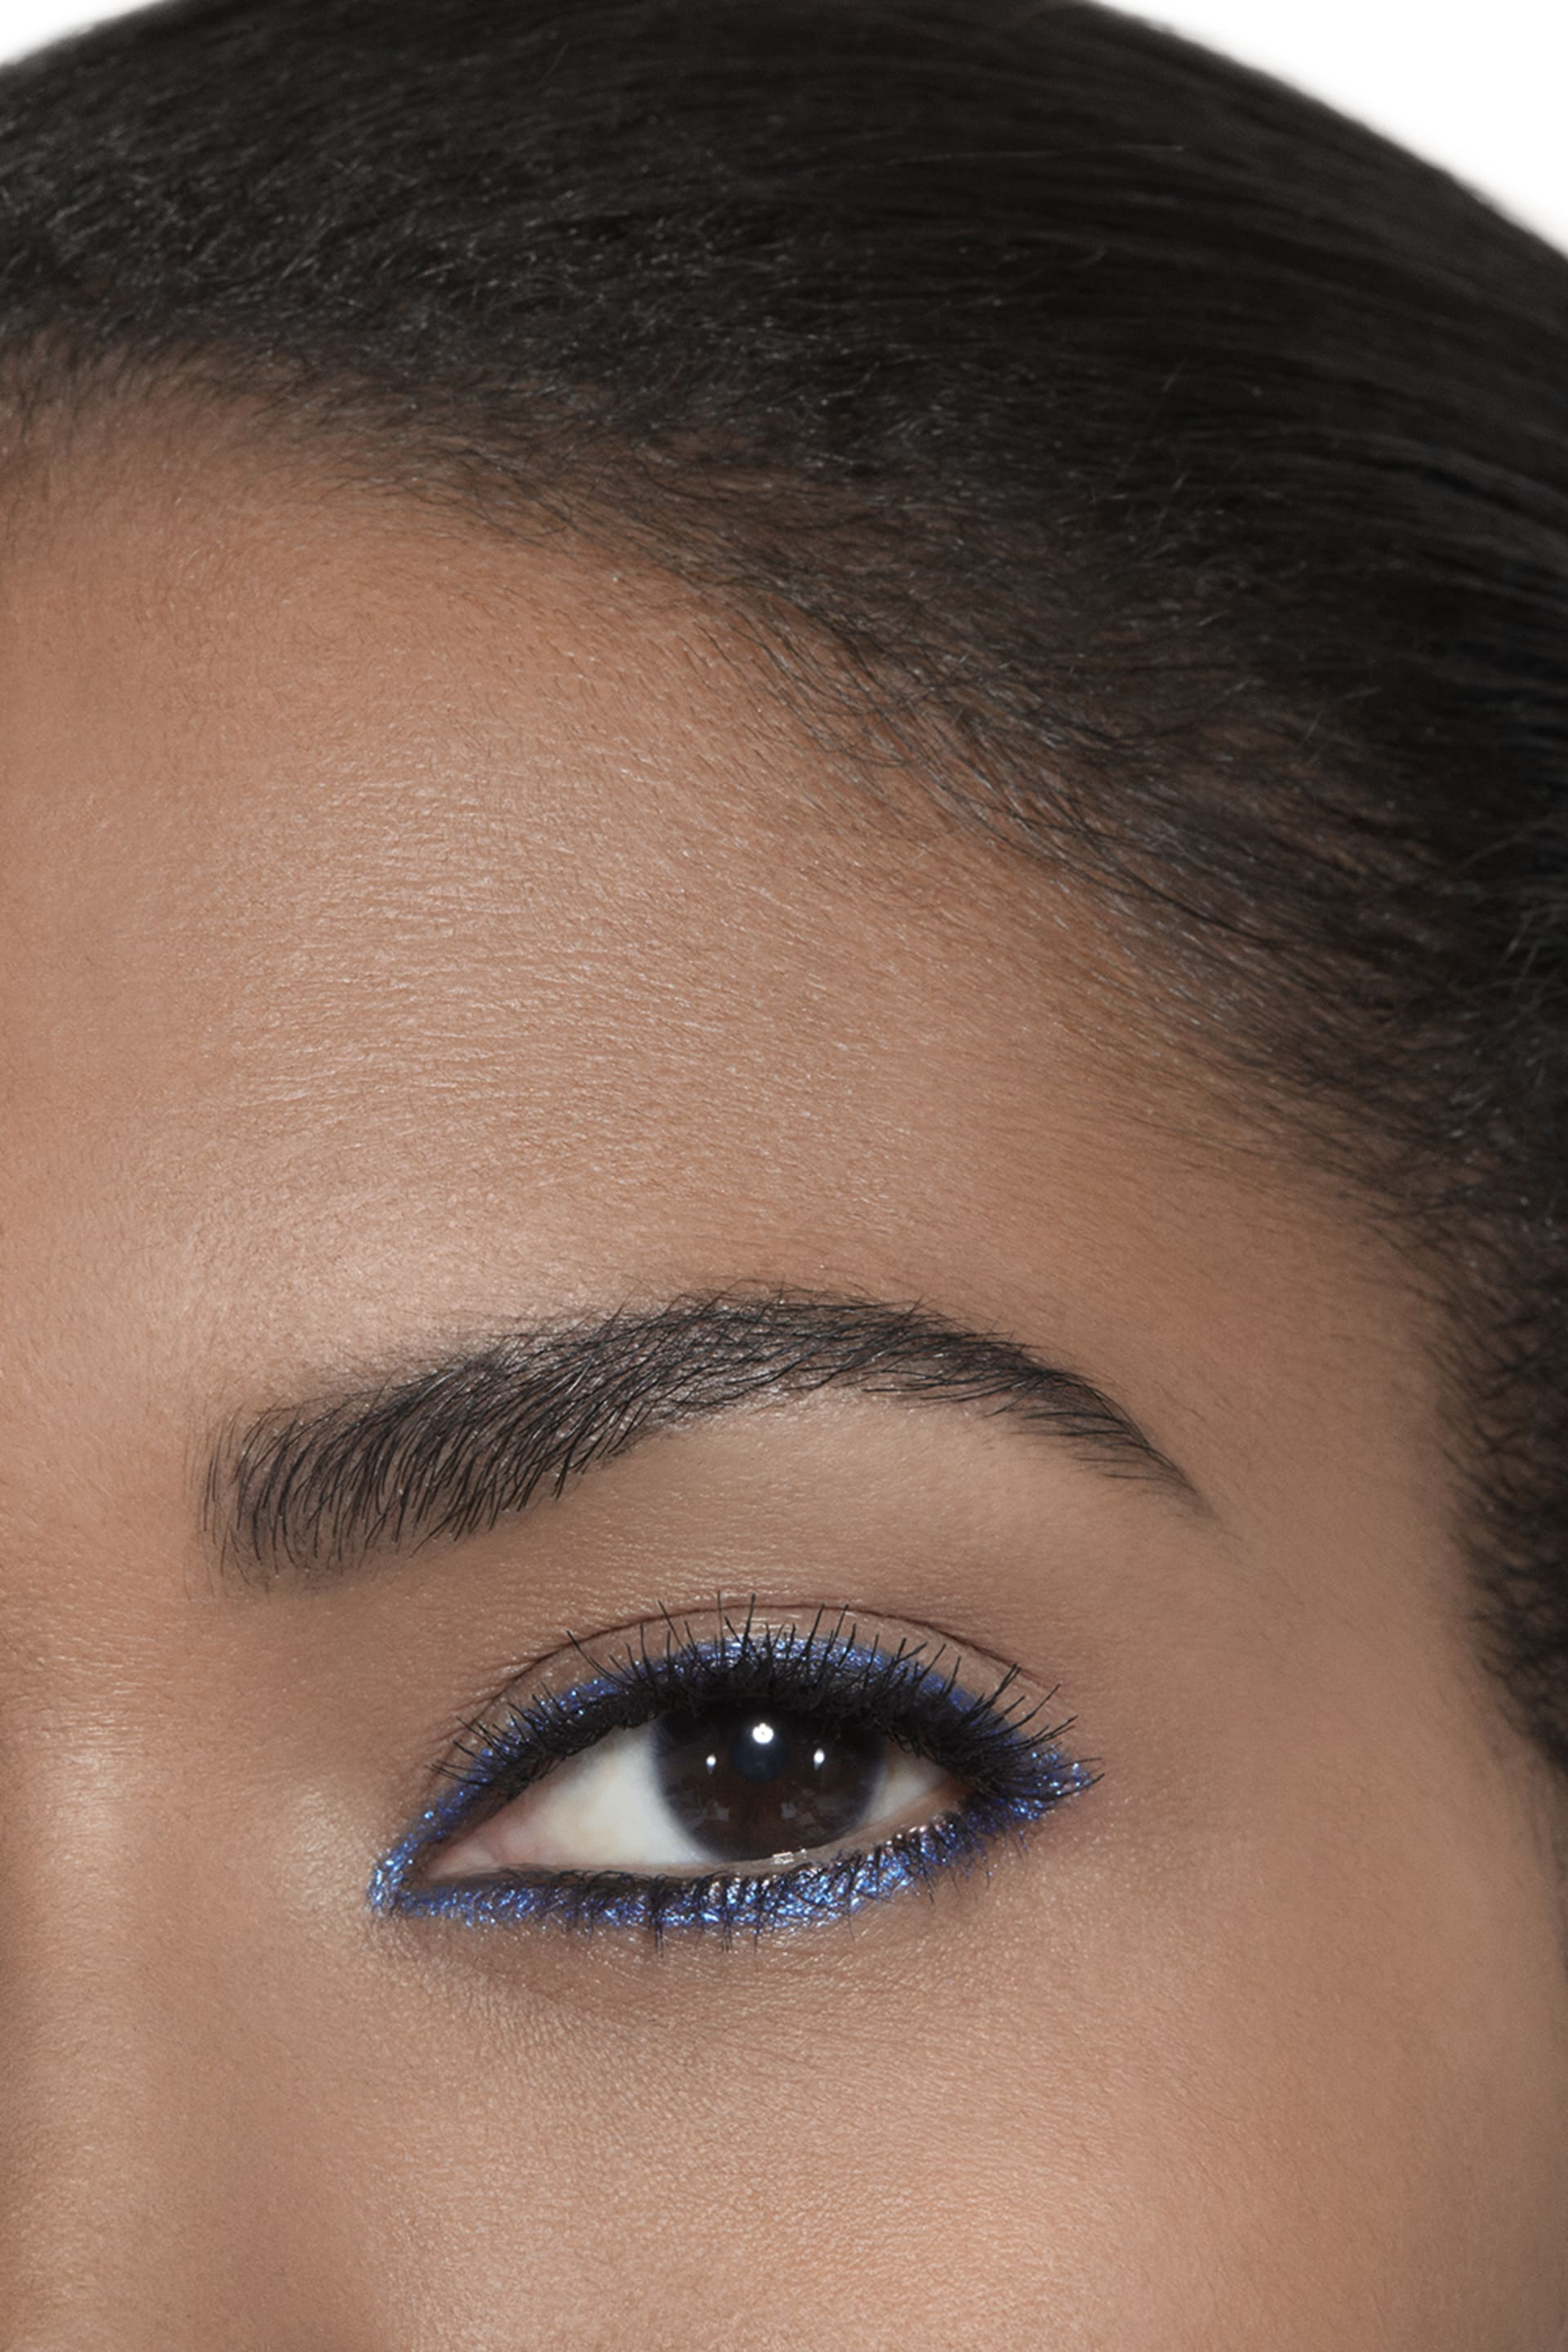 Application makeup visual 2 - STYLO YEUX WATERPROOF 924 - FERVENT BLUE